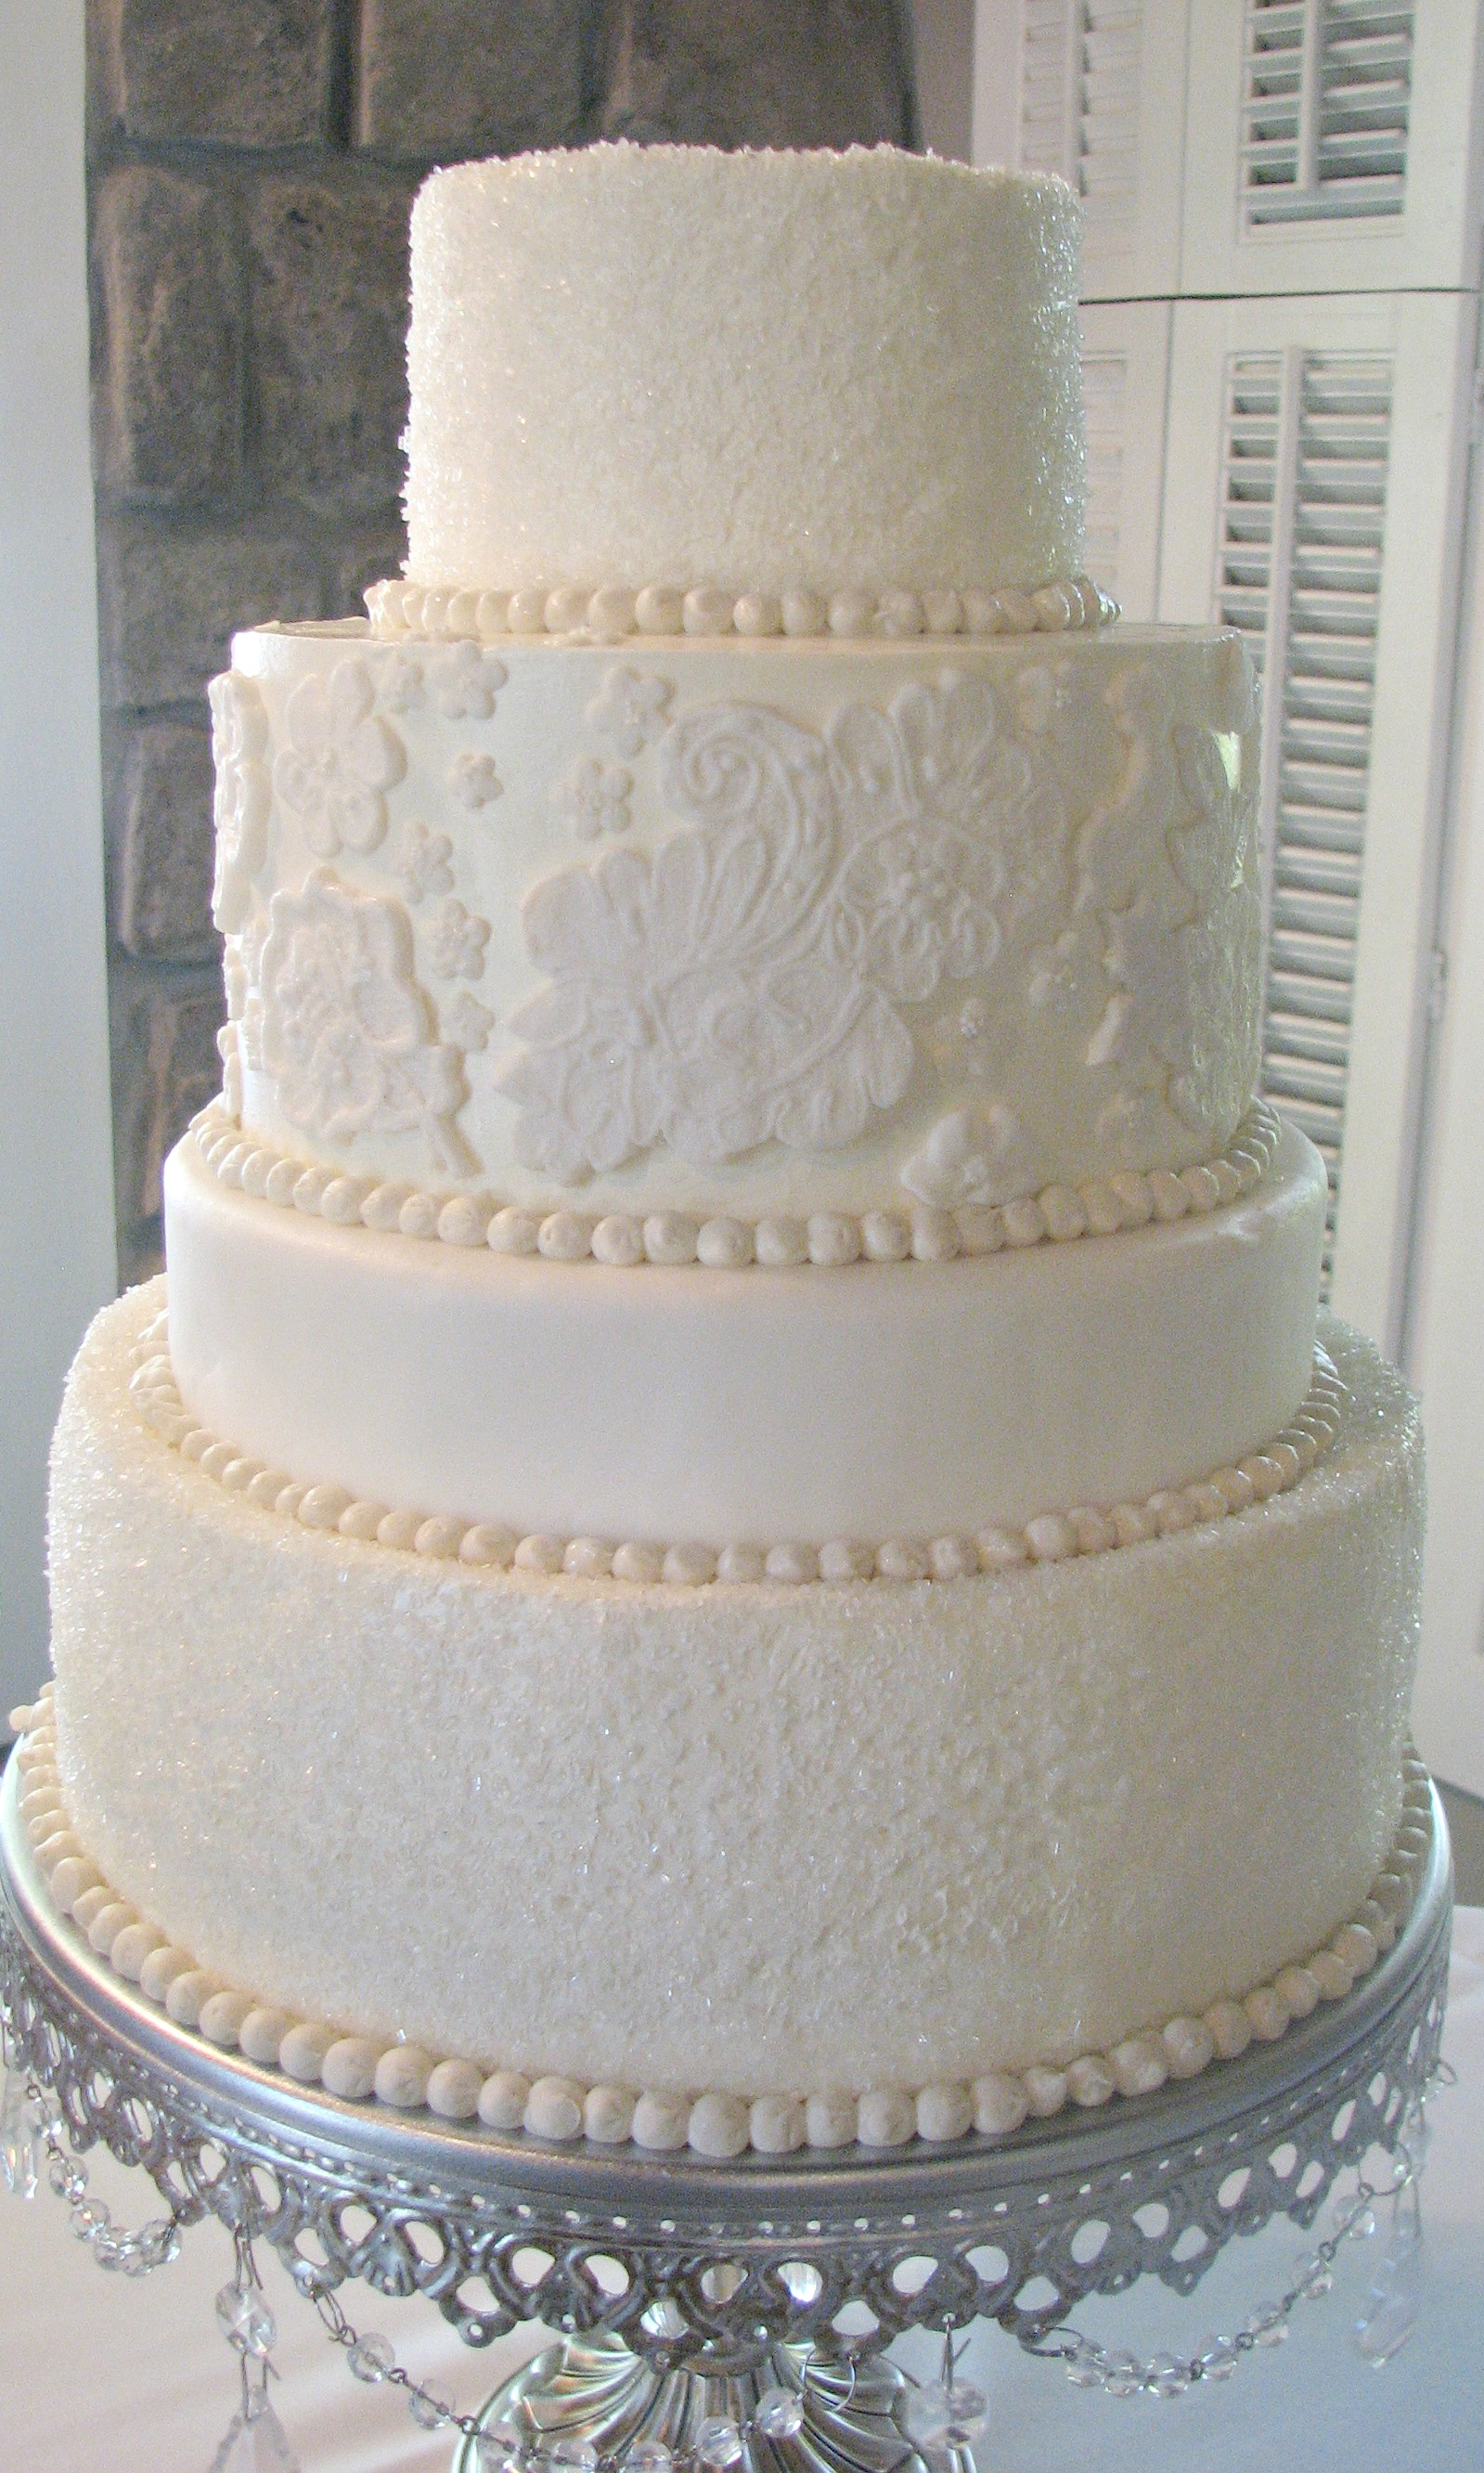 Tiered White Wedding Cake   Silver Cake Stand